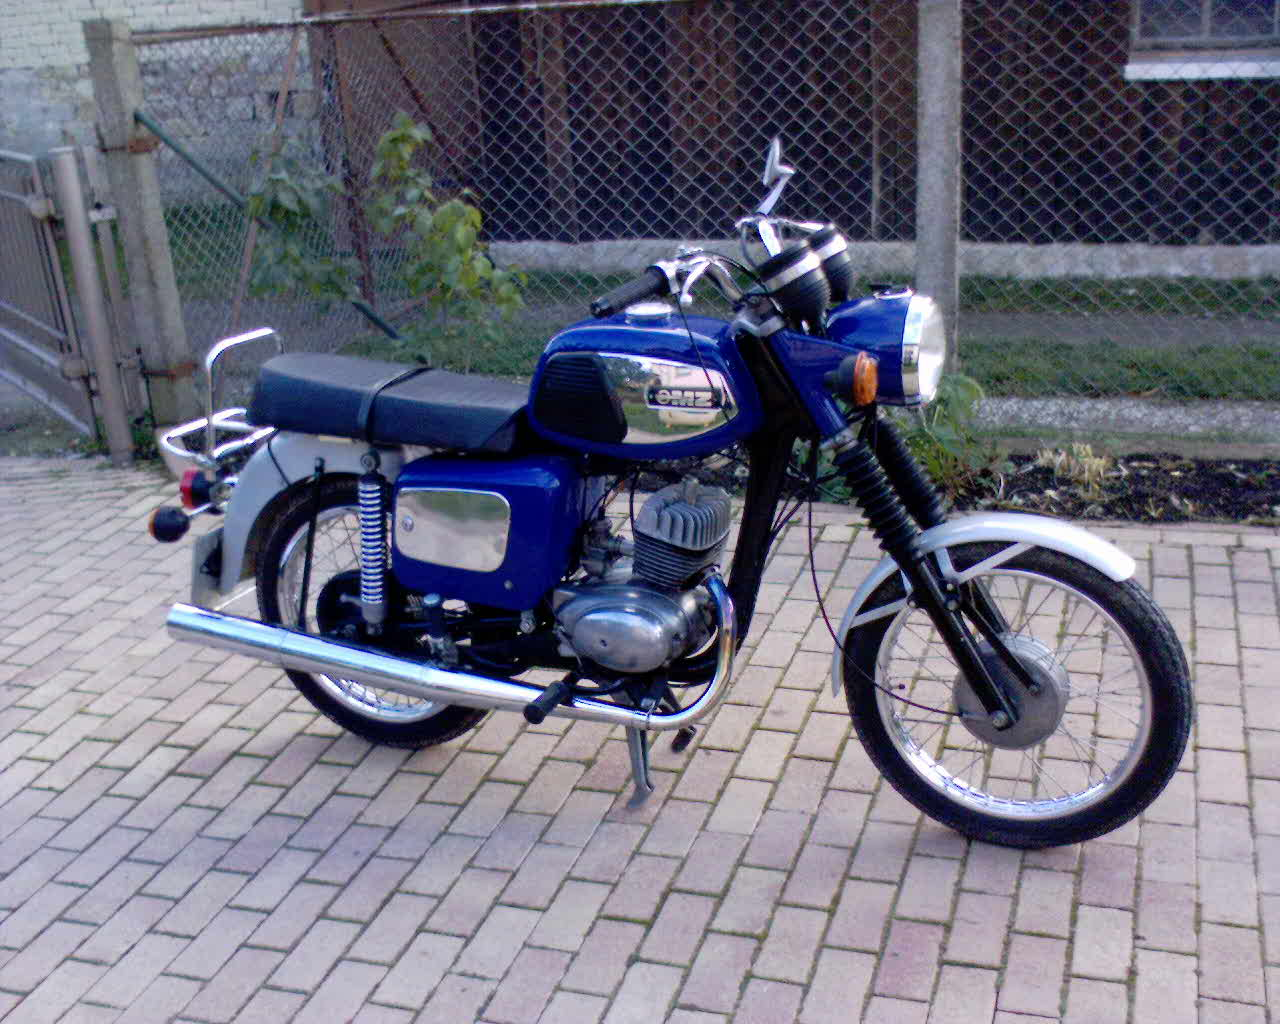 MZ 125 brown